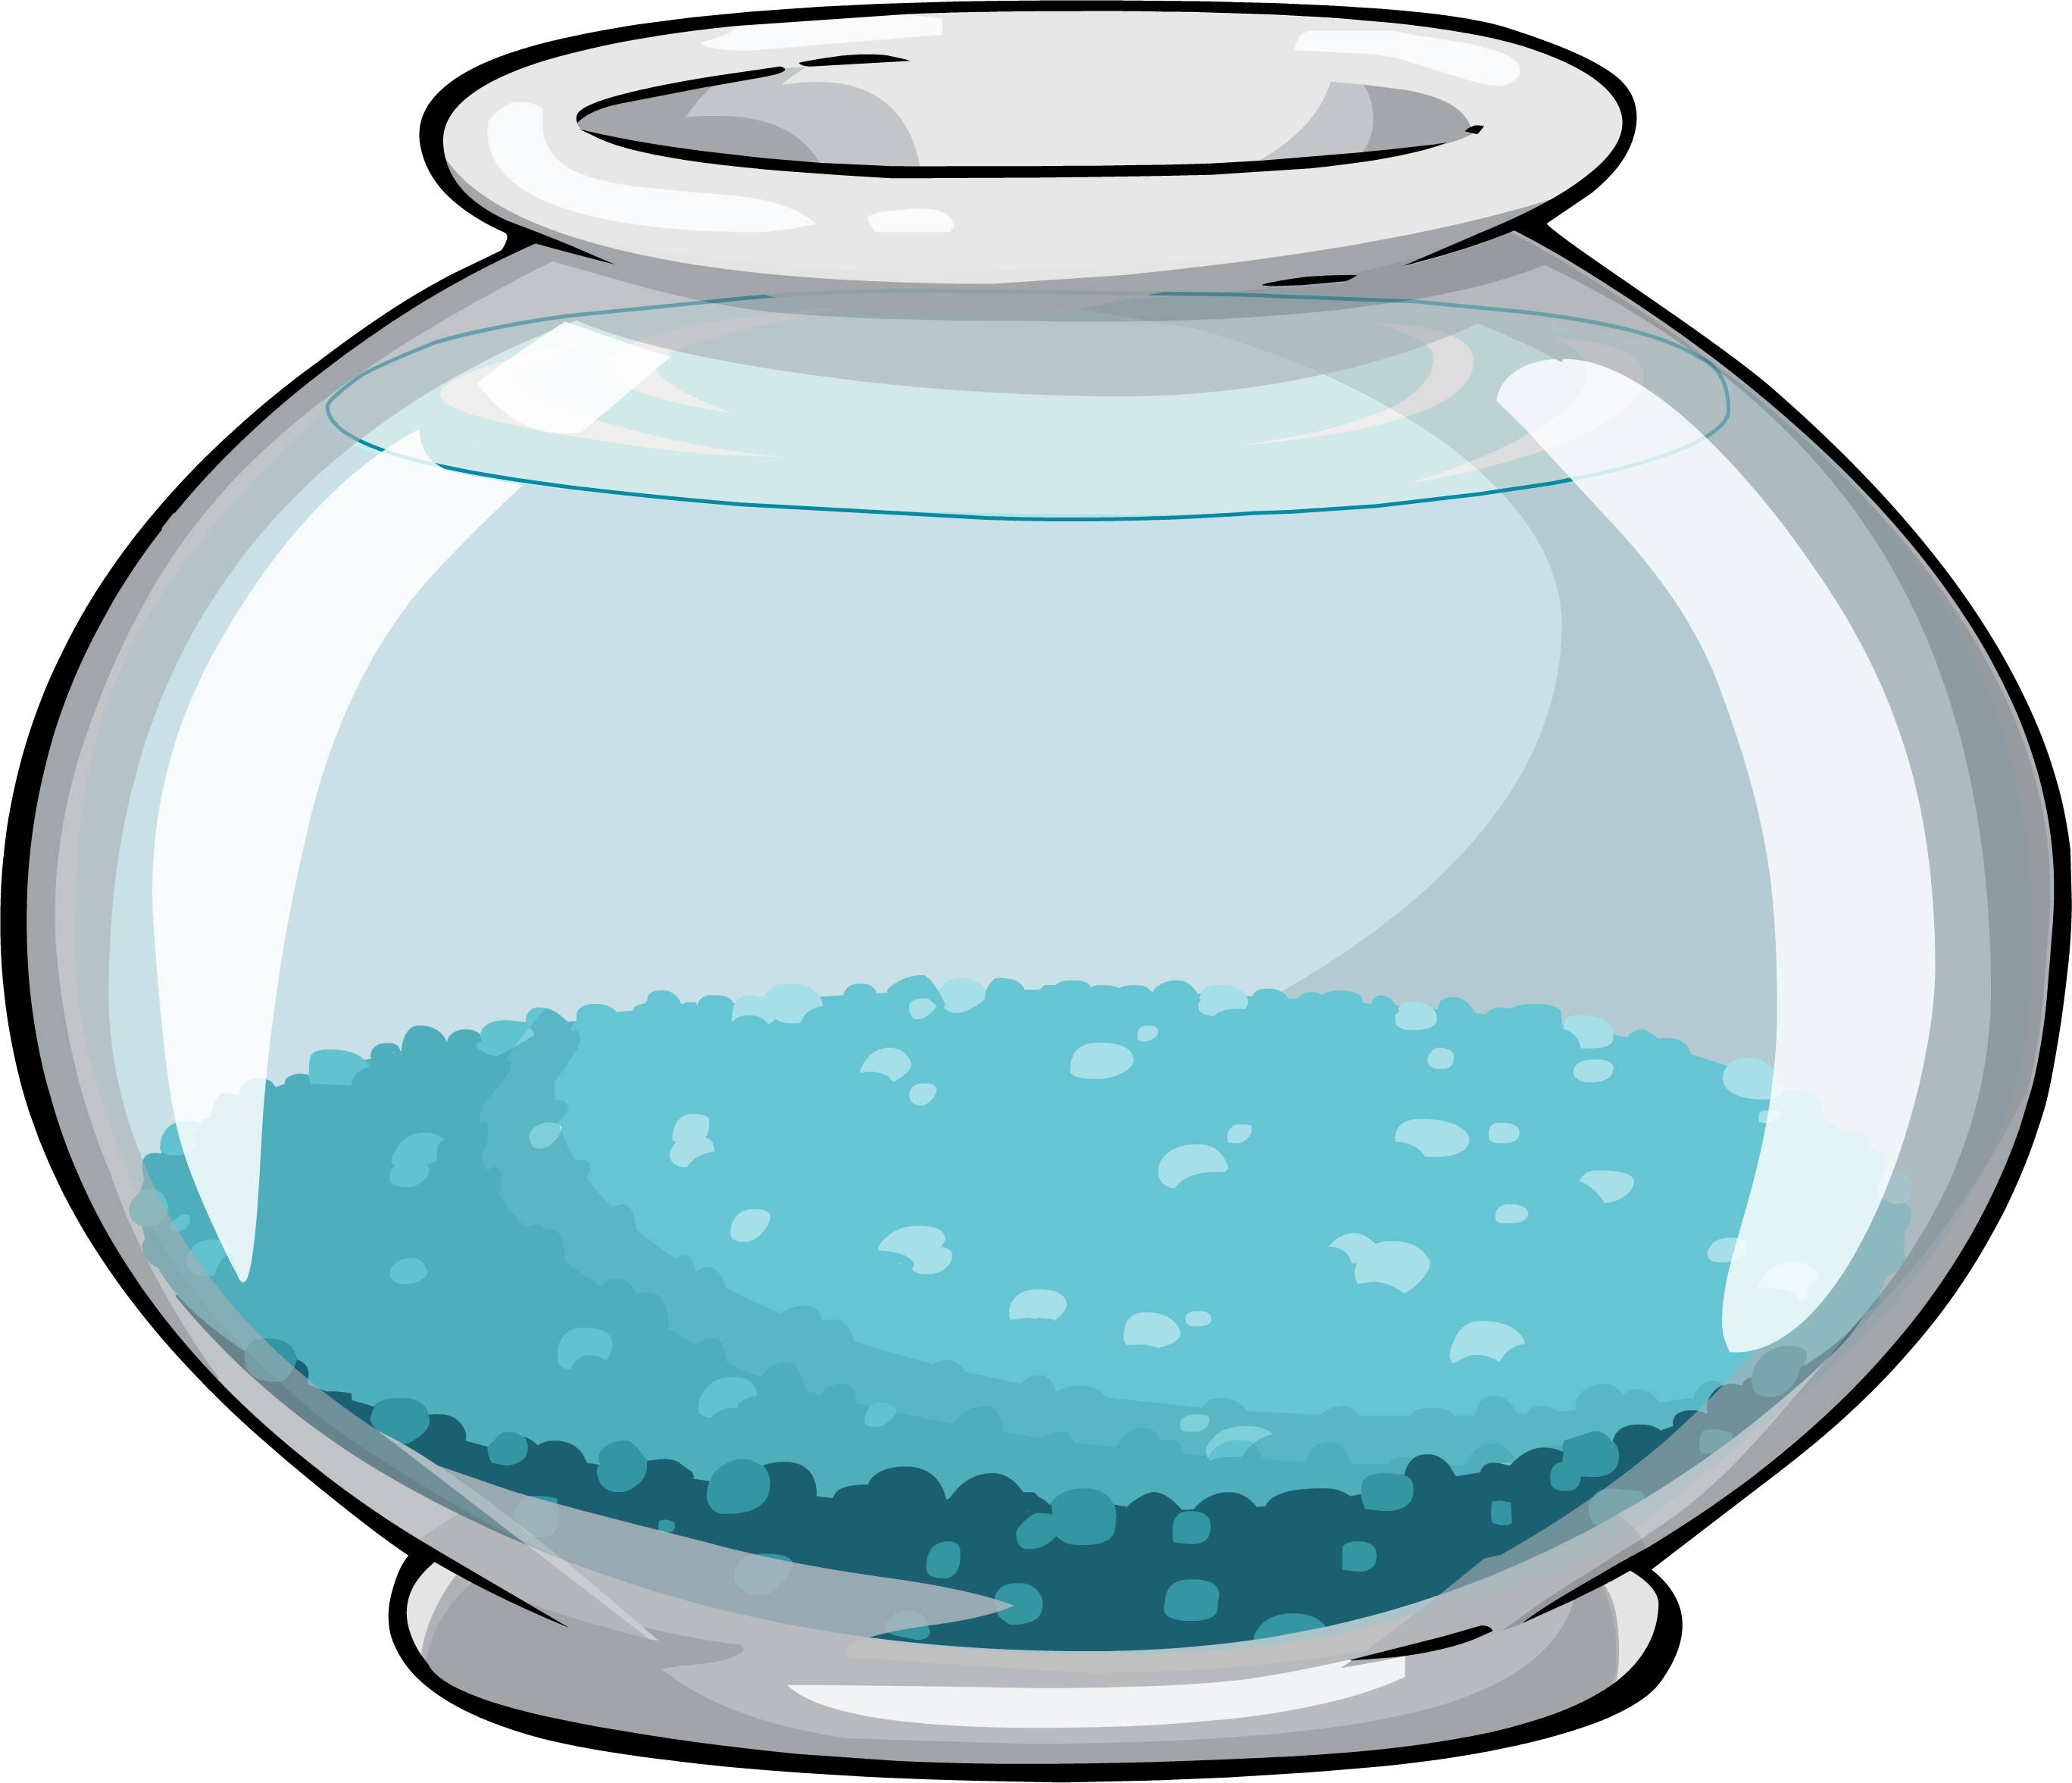 Fish bowl pictures clipart best for Legal fish bowl